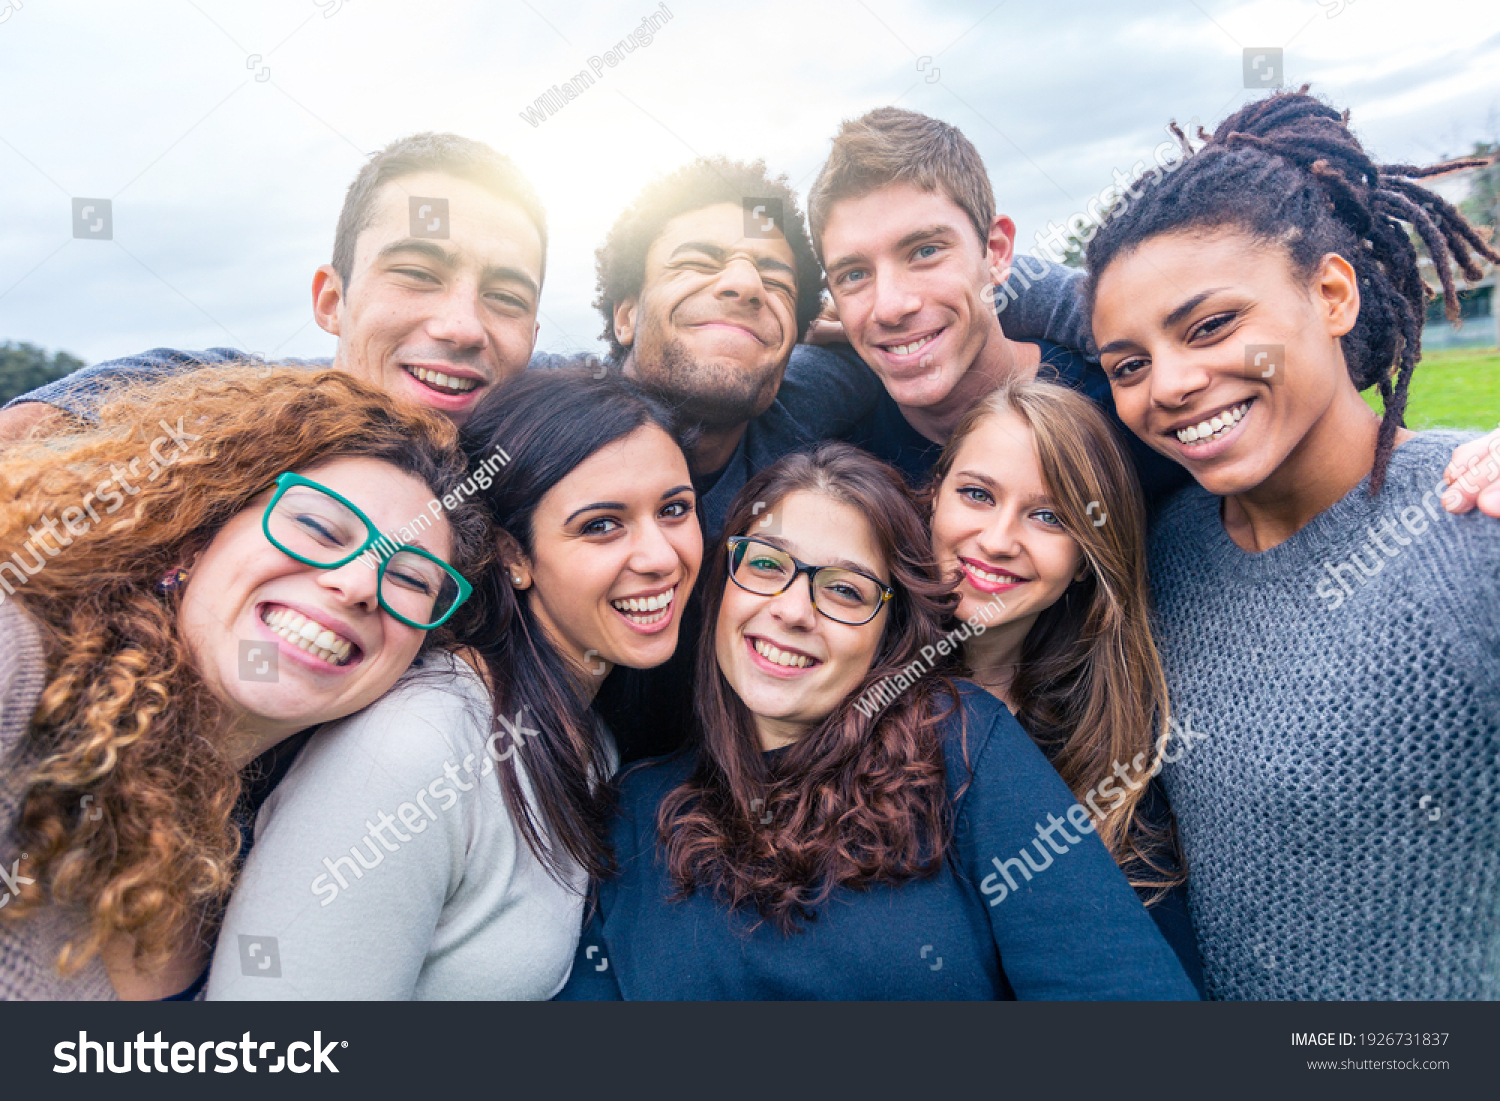 Multiracial people together in a selfie making funny faces - Group of friends with mixed races having fun together at park - Friendship and lifestyle concepts #1926731837